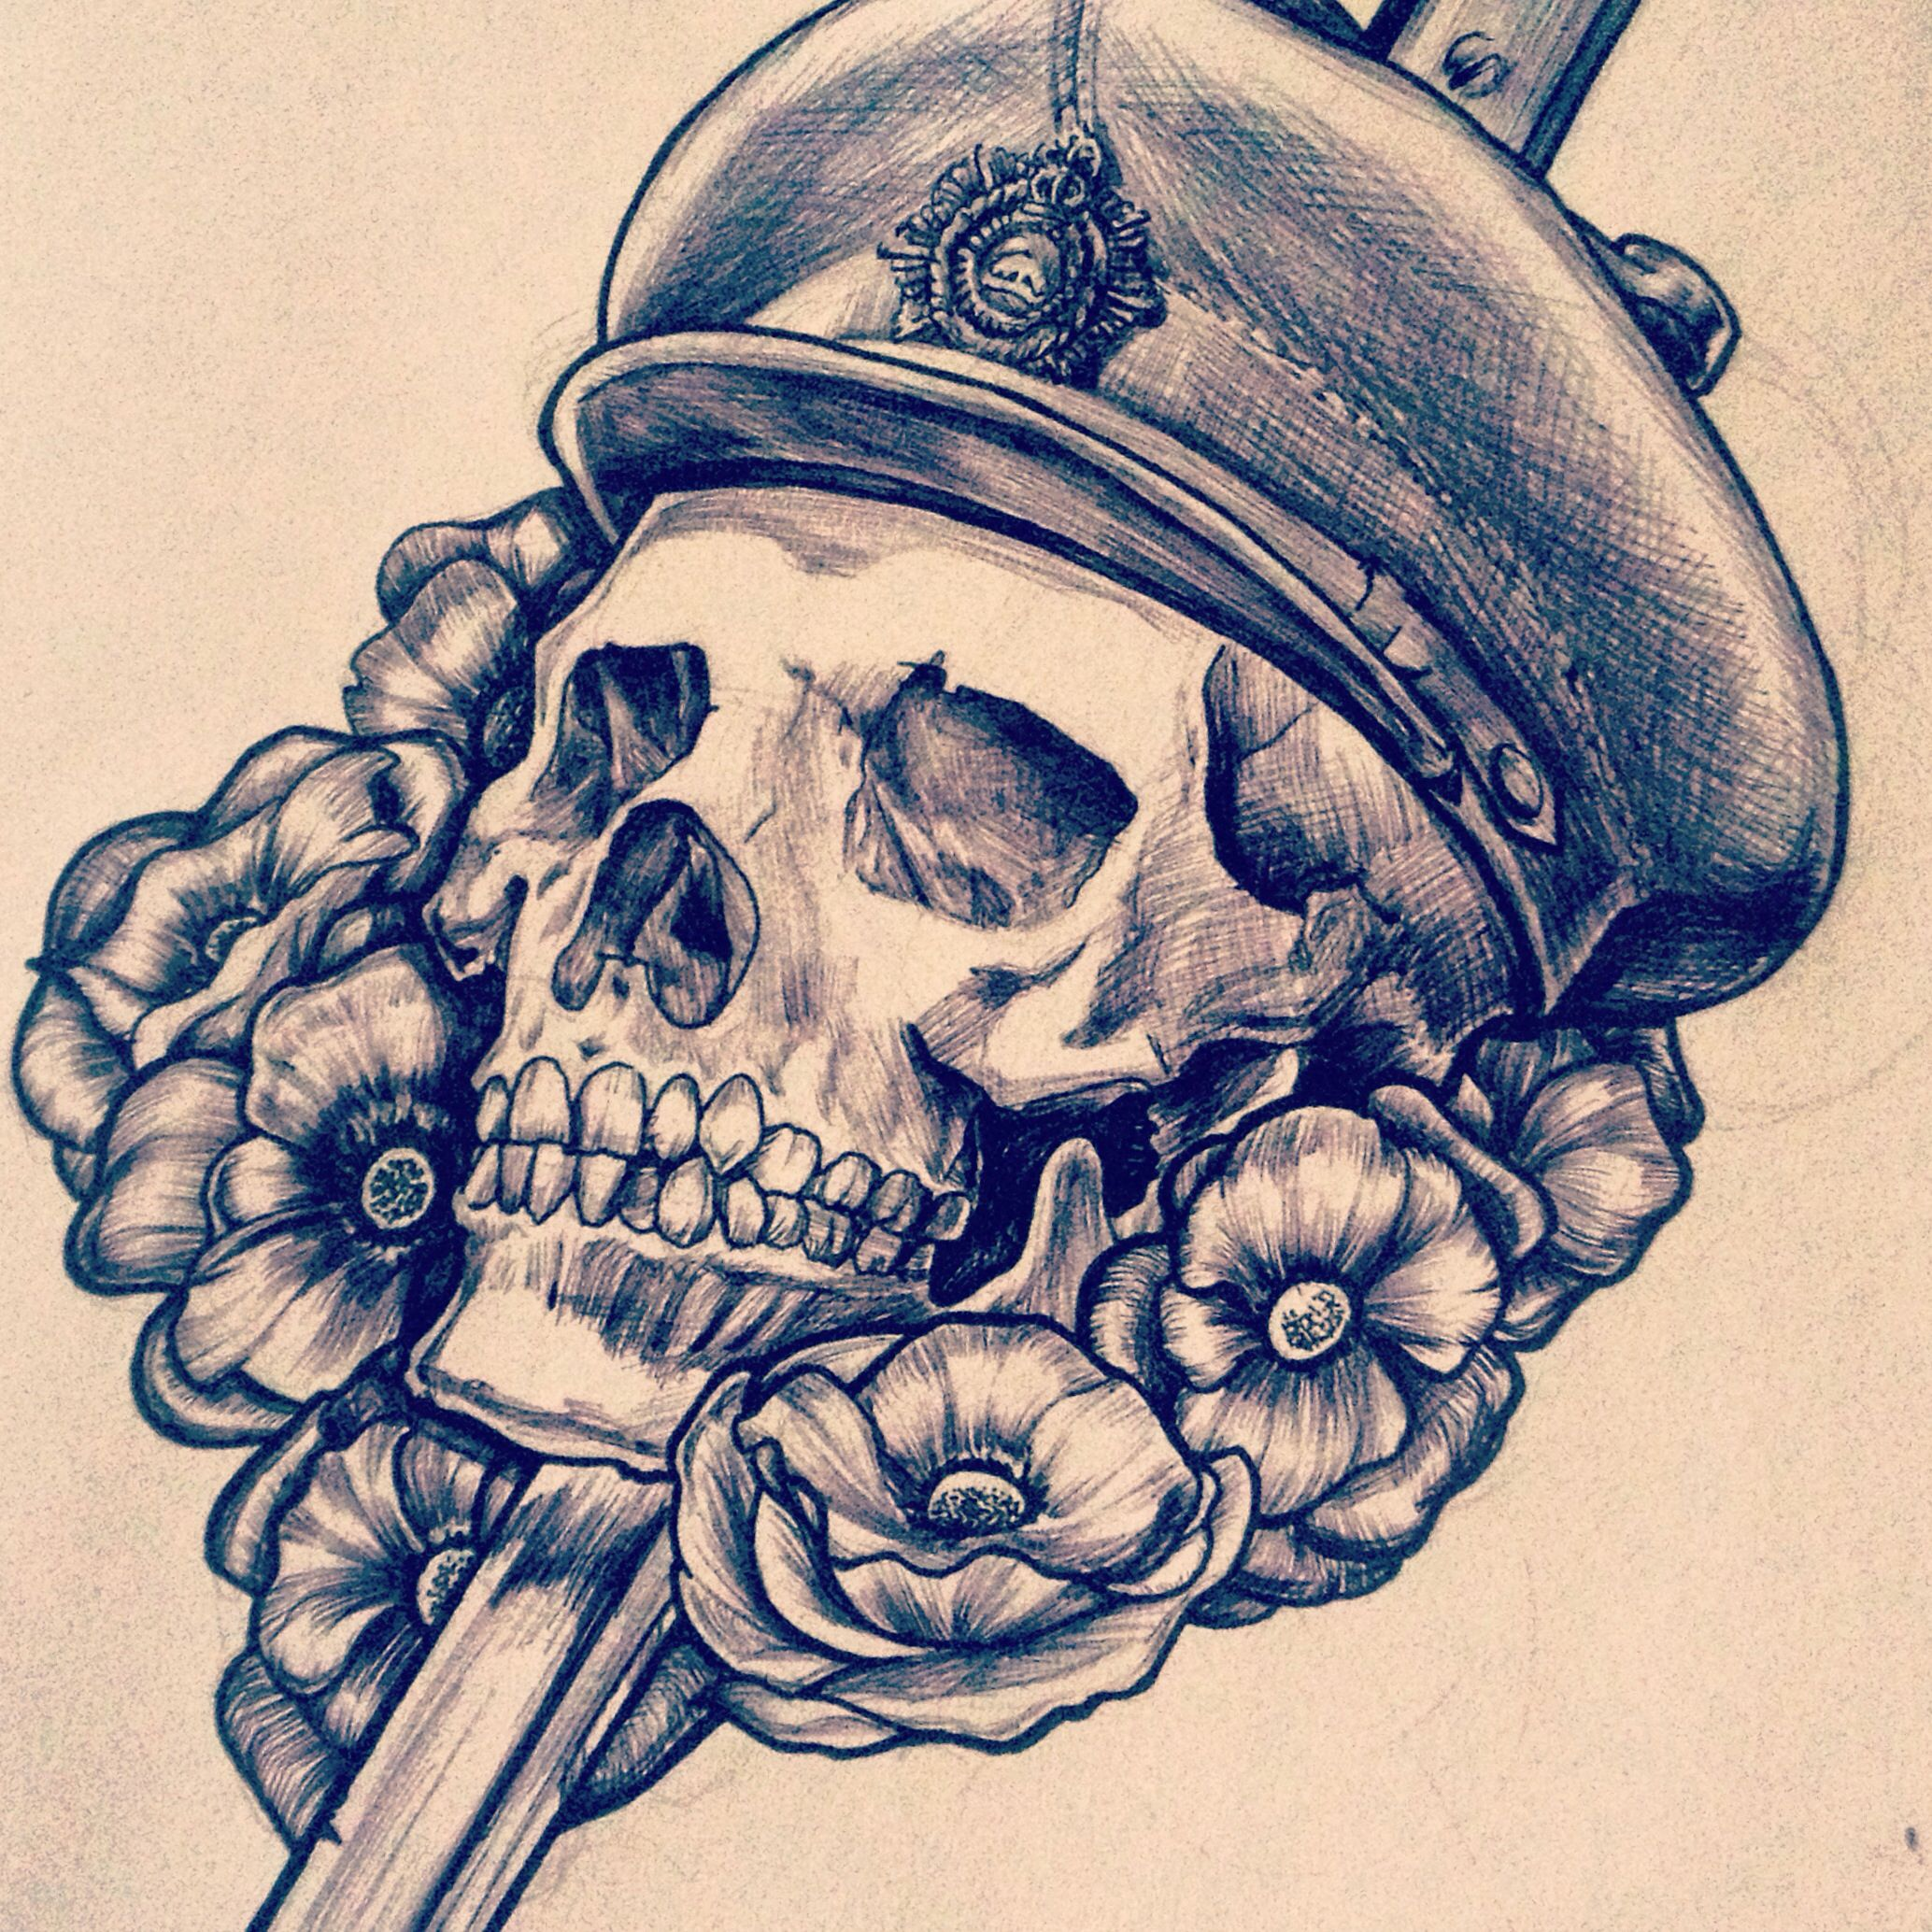 canadian wwi tattoo skull and dagger design ross rifle bayonet my tattoo designs pinterest. Black Bedroom Furniture Sets. Home Design Ideas